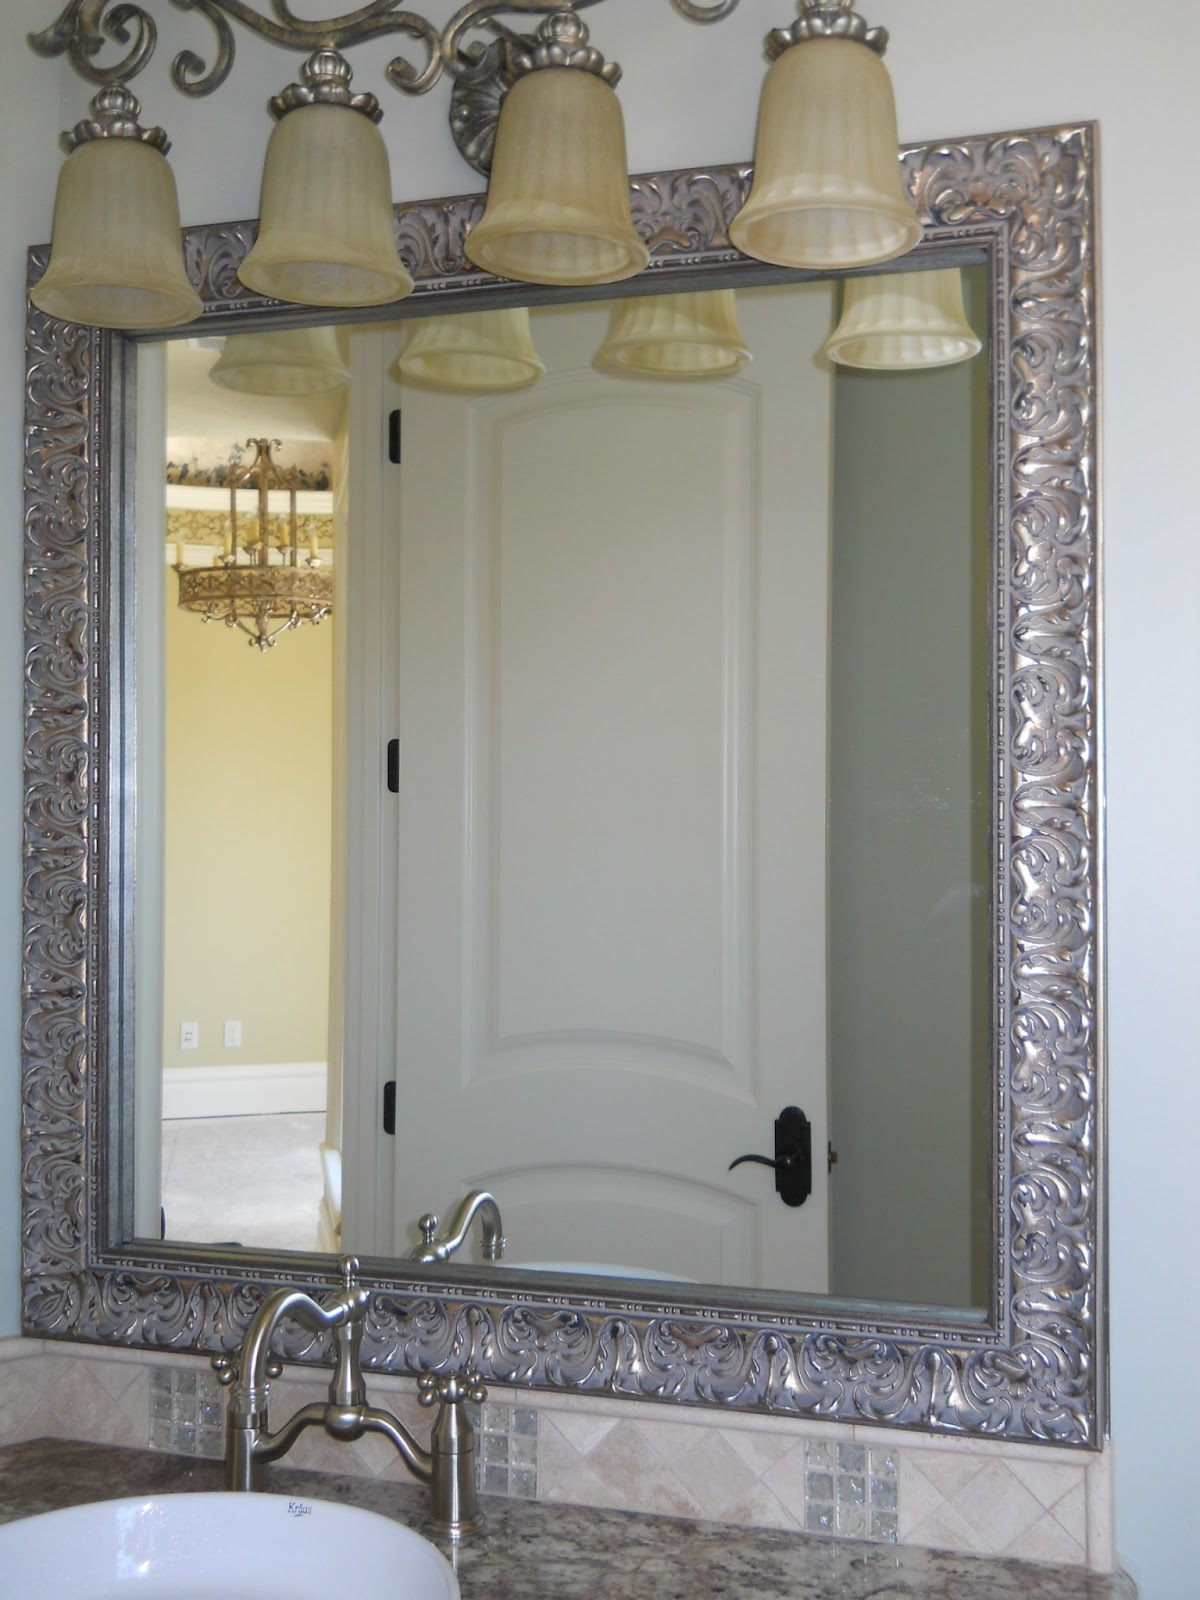 Reflected design bathroom mirror frame mirror frame kit Frames for bathroom wall mirrors